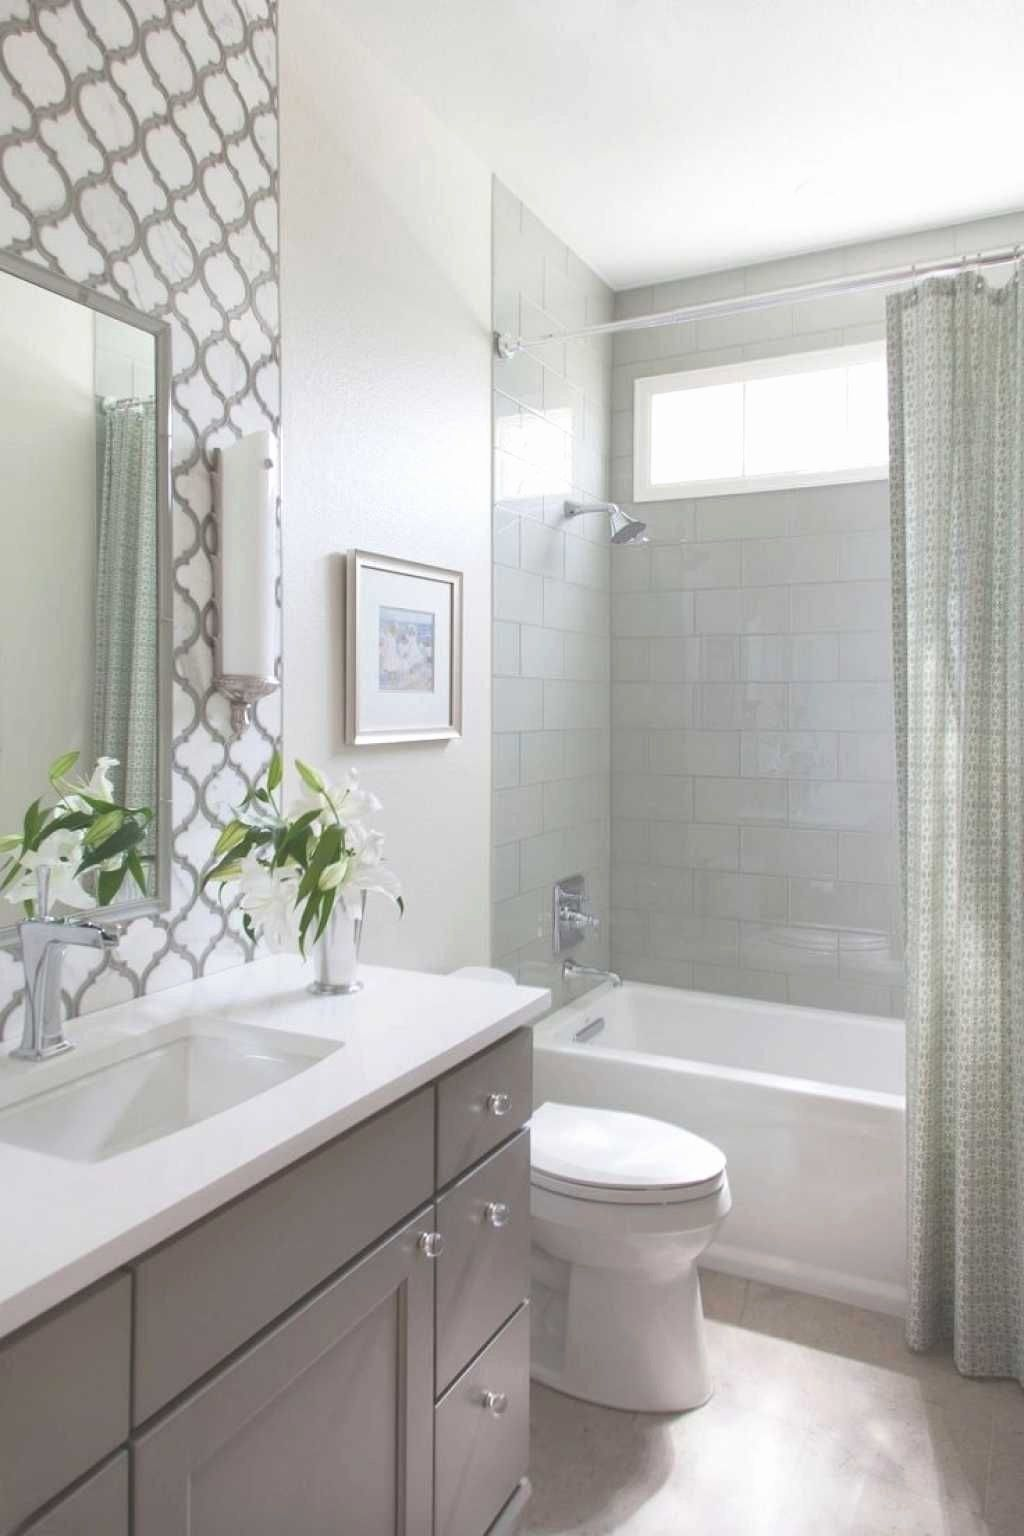 Small Bathroom With Tub And Shower Inspirational Small Bathroom Designs With Tub Putra S In 2020 Bathroom Design Small Small Bathroom Remodel Bathroom Tub Shower Combo